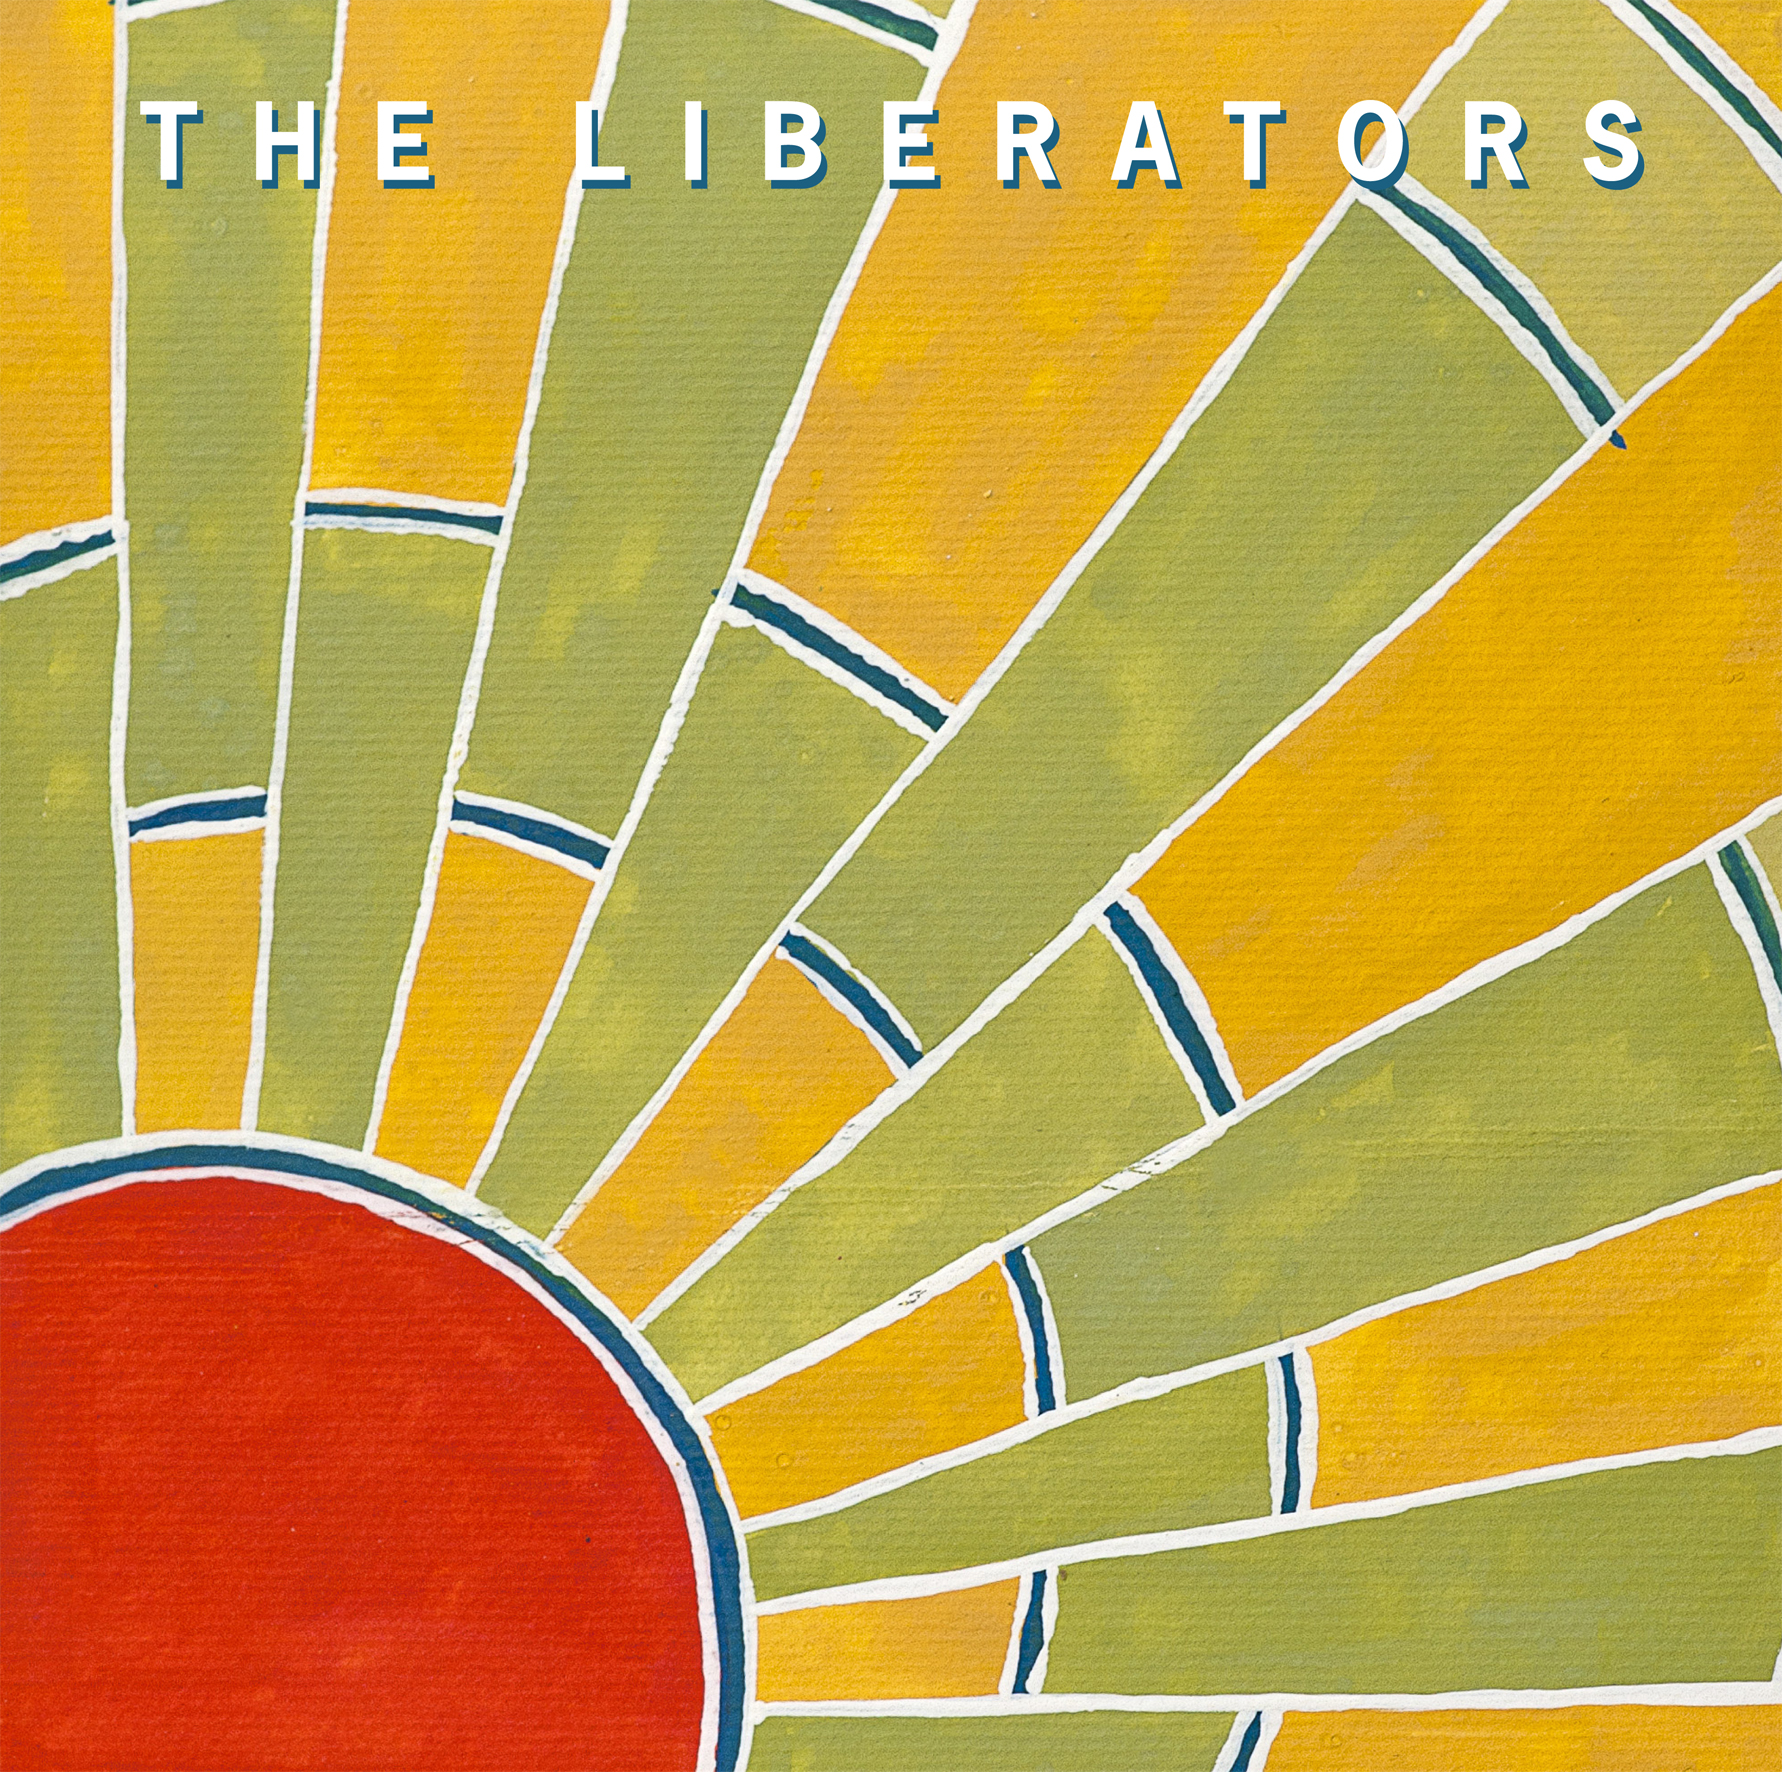 Cover artwork for The Liberators